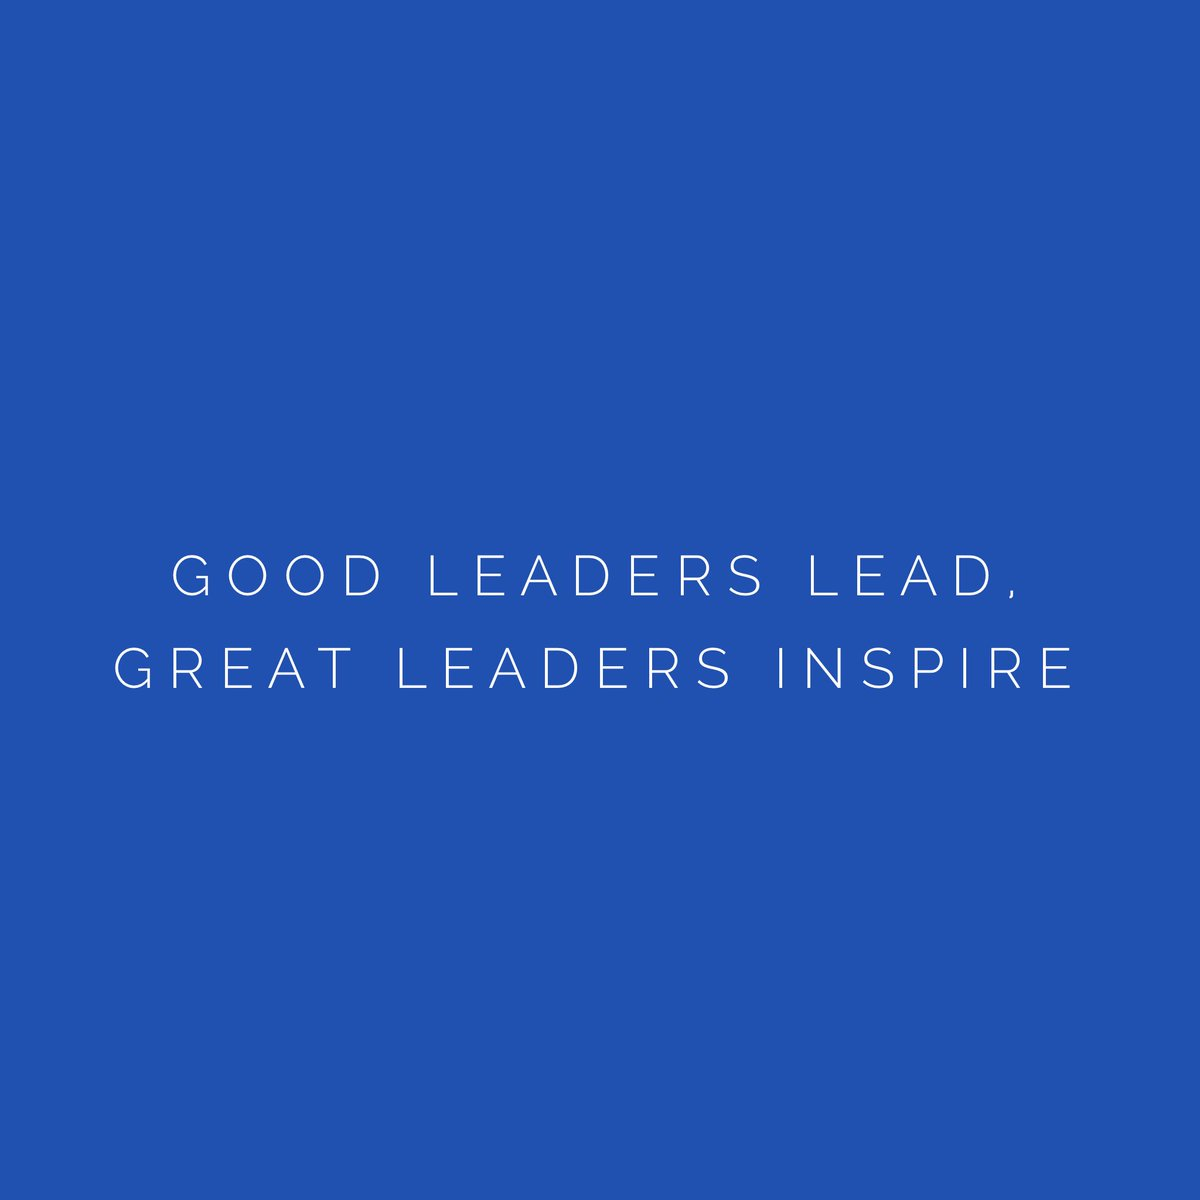 How Do You Inspire Your Team, Your Tribe, or Your Family? #leadership #leaders #inspiration #professionalspeaker #inspirationjunkie<br>http://pic.twitter.com/3tFPLmMXjs